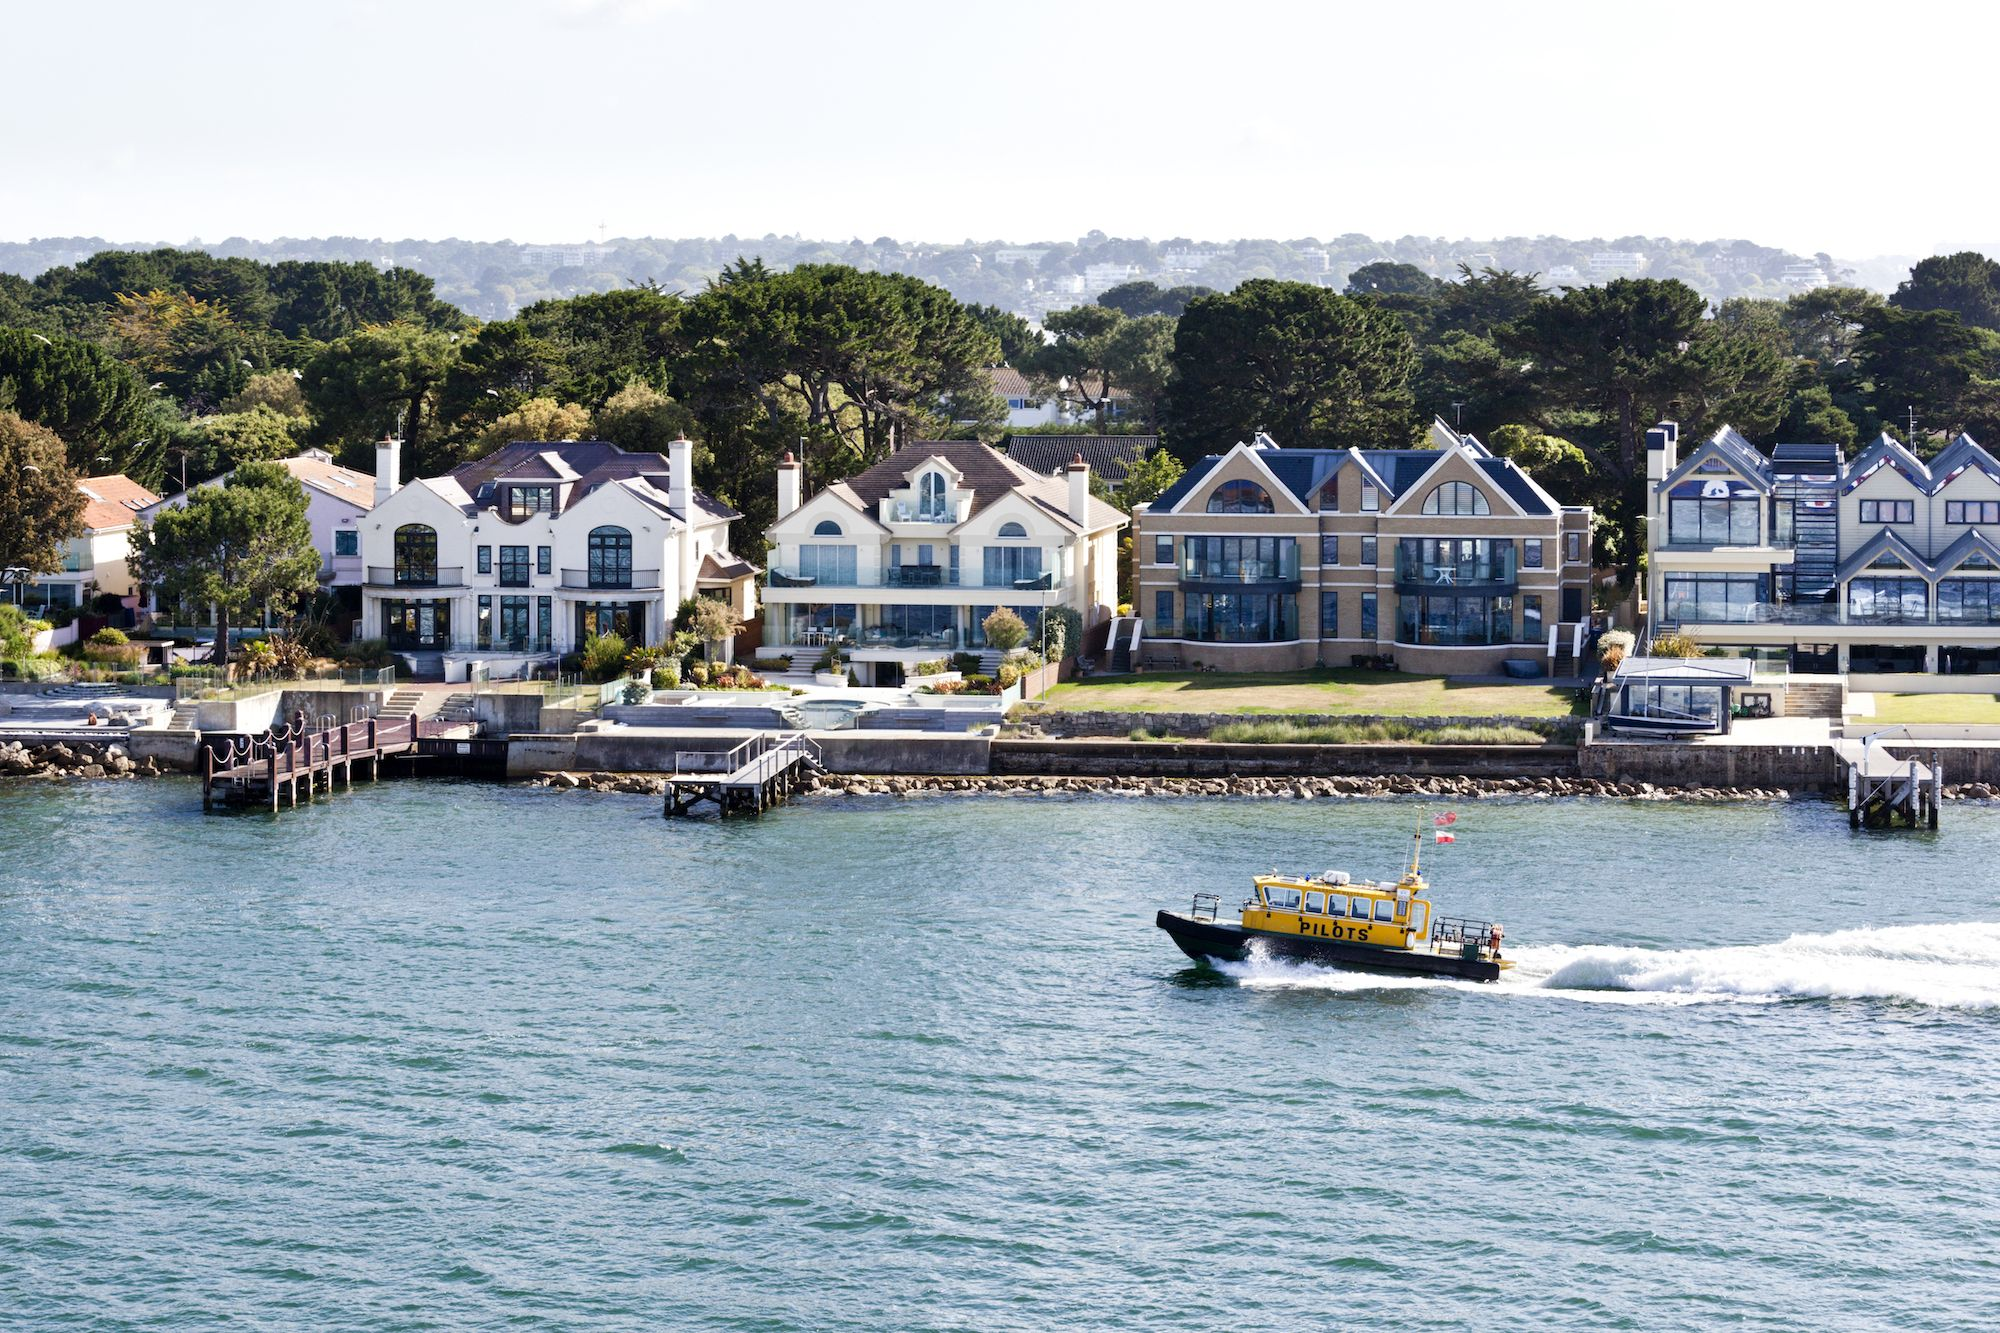 Millionaires Row In Sandbanks Dorset Is The World S Most Expensive Coastal Street